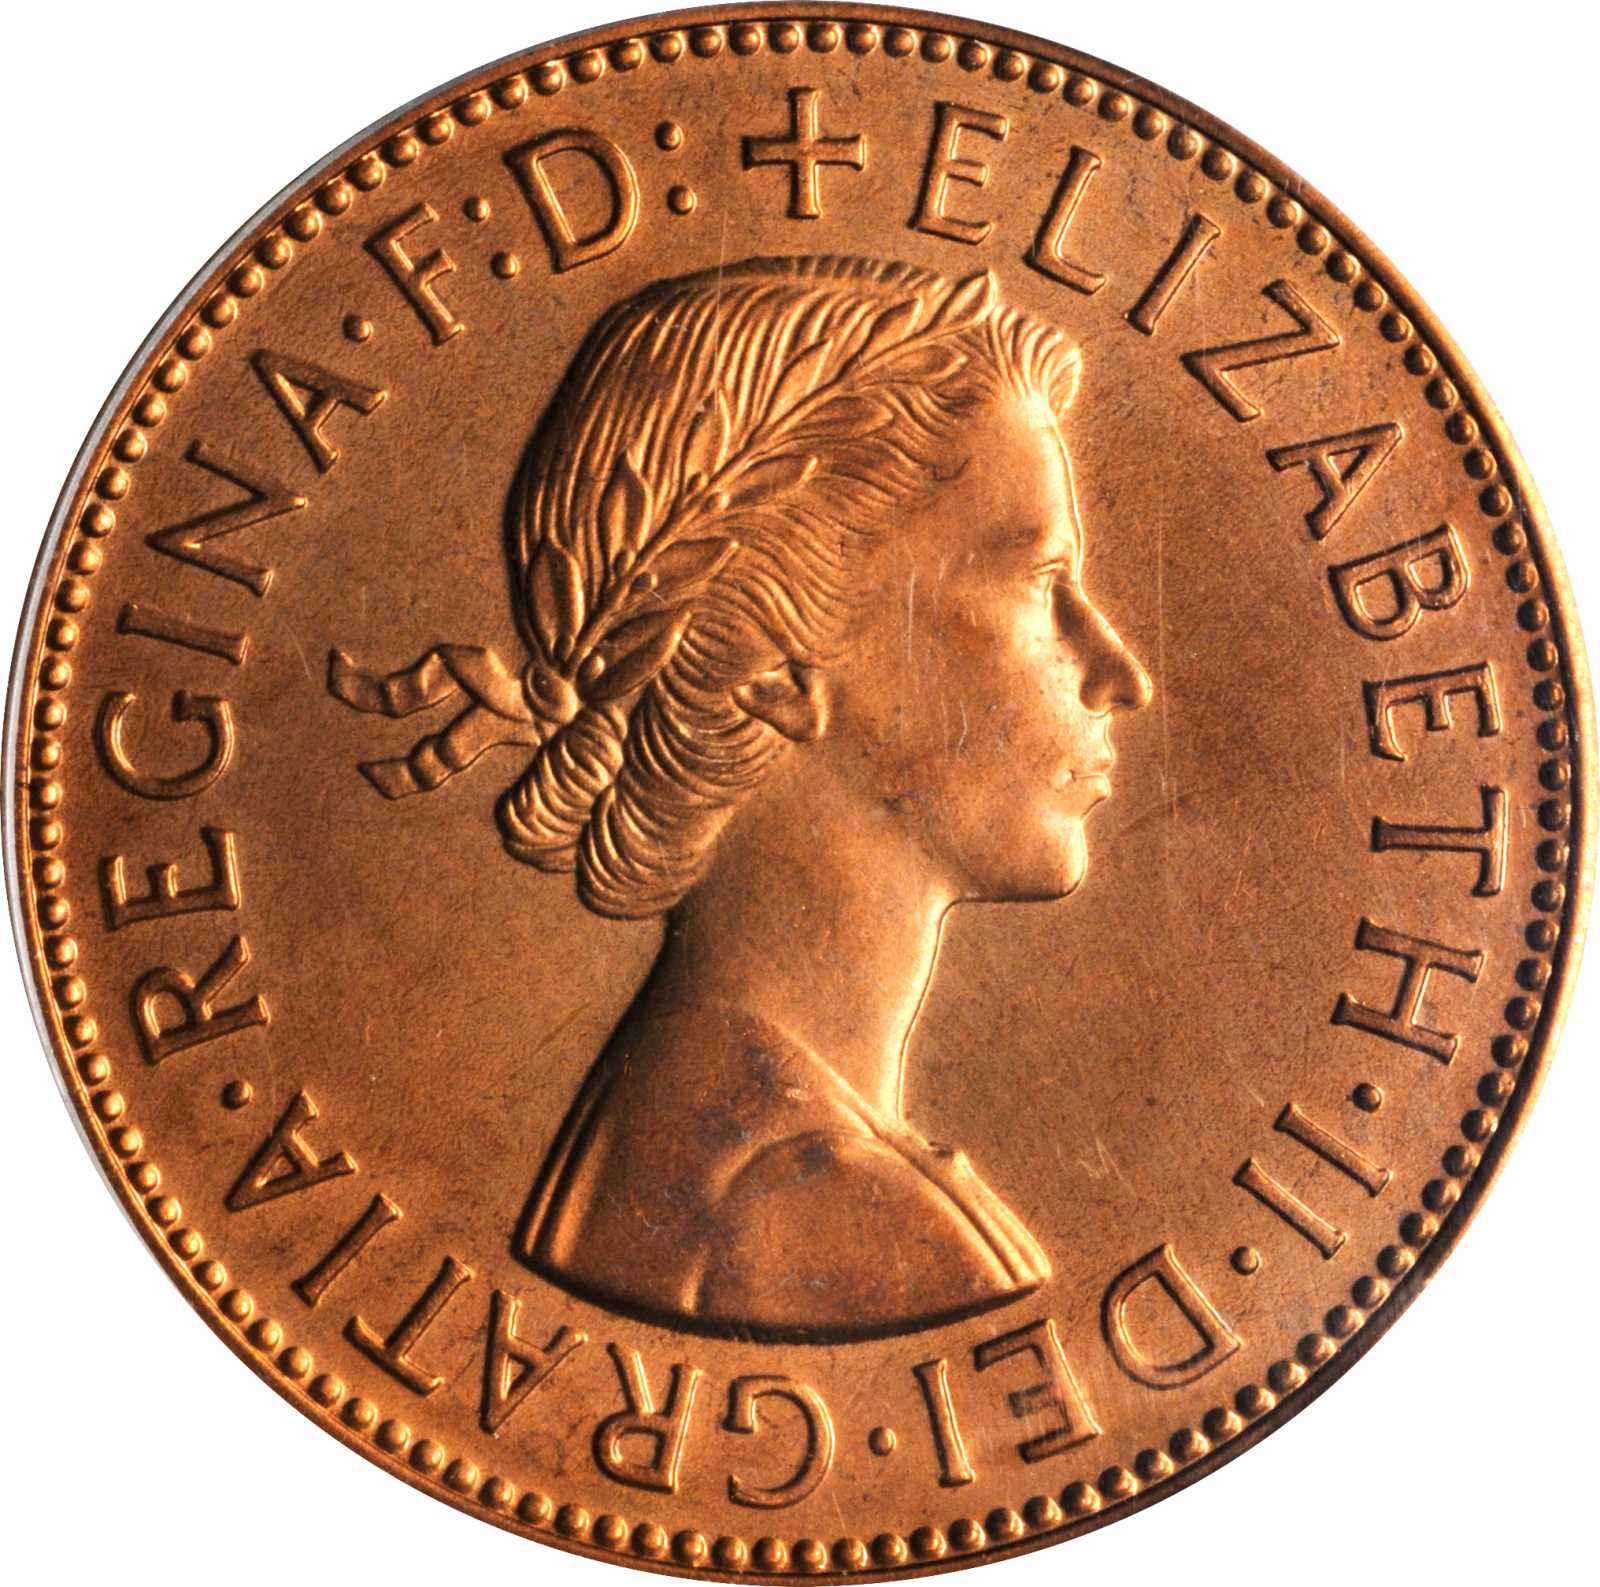 Penny (Pre-decimal): Photo Great Britain 1961 penny